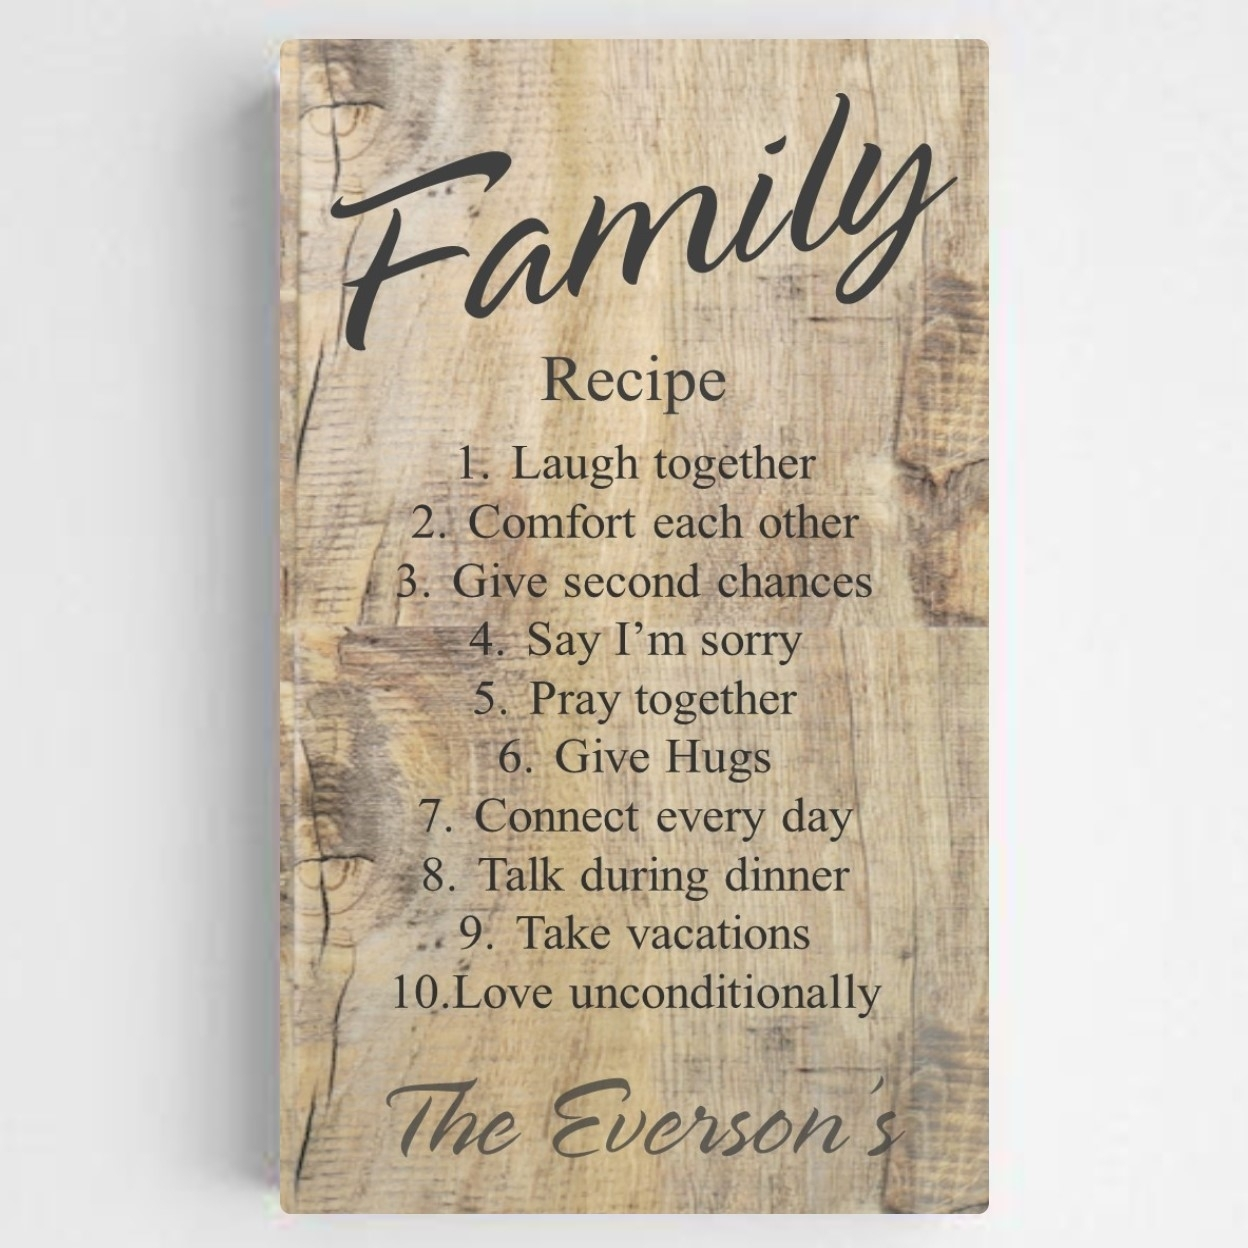 Family Recipe Rustic Canvas Sign | Family Gift | Arttowngifts Throughout Most Popular Rustic Canvas Wall Art (View 6 of 15)